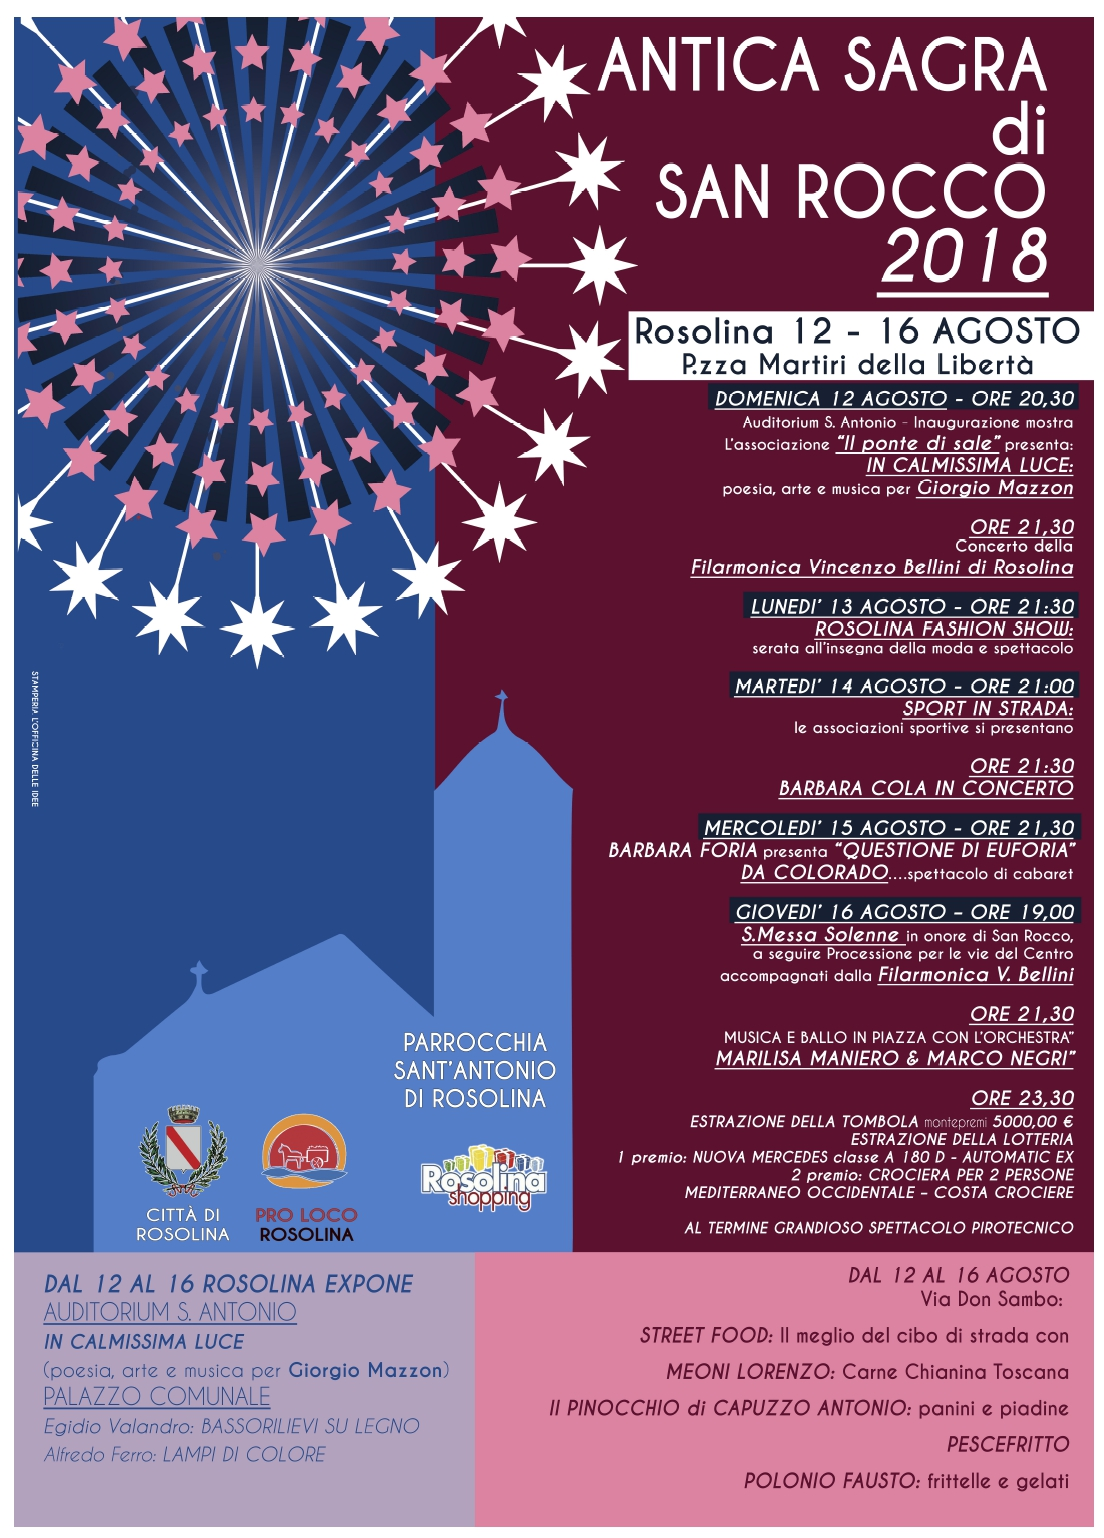 Antica Sagra di San Rocco 2018 a Rosolina Mare - Events 2018 at Rosolina Mare